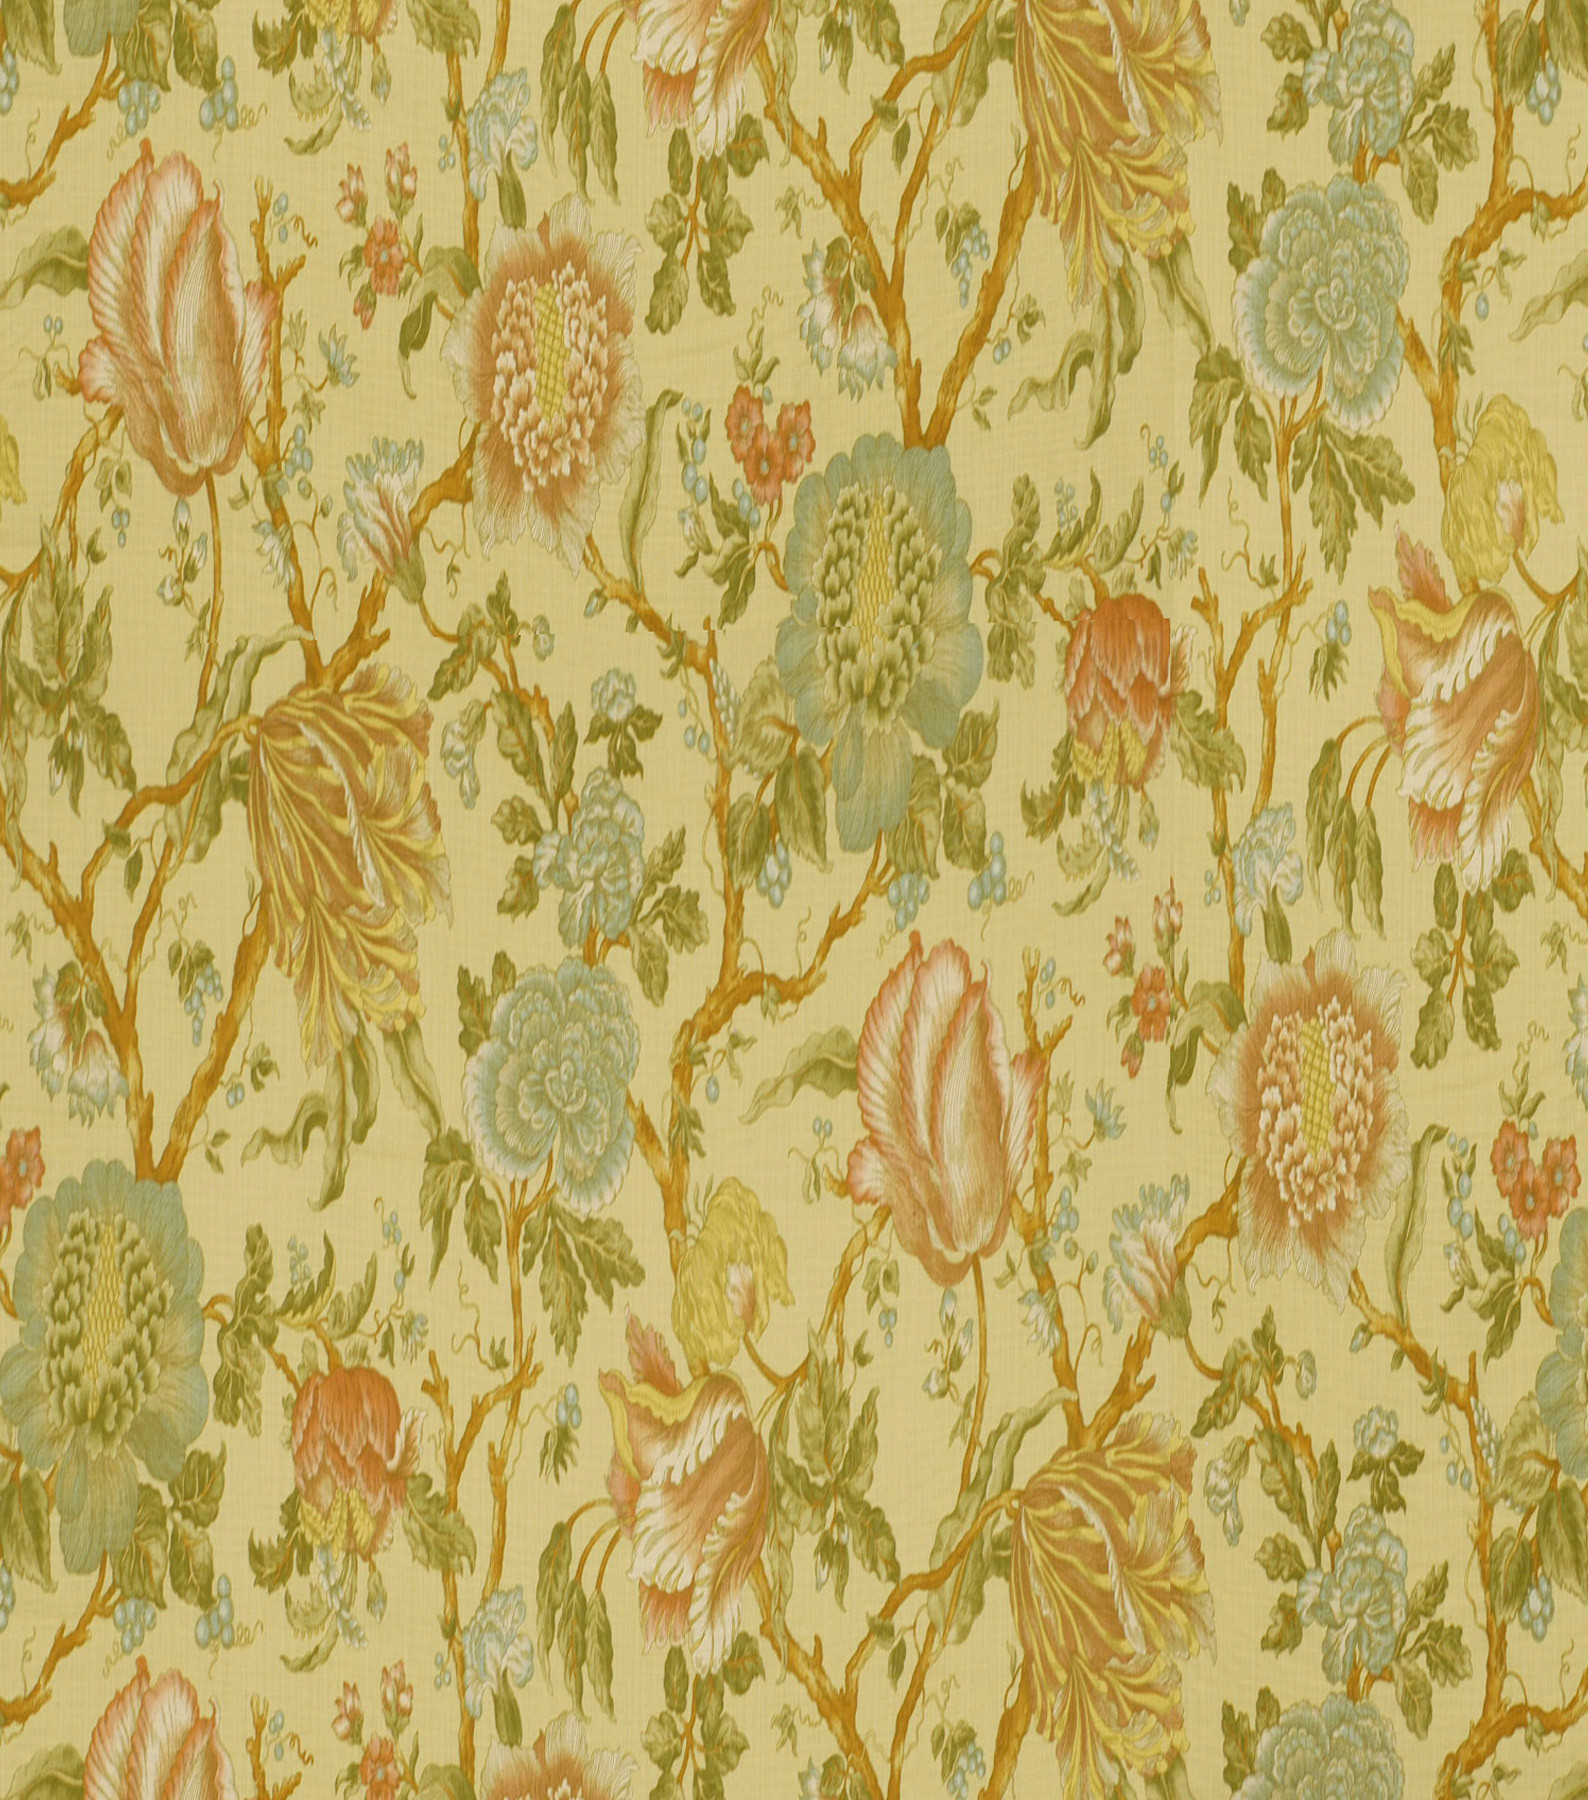 Home Decor 8\u0022x8\u0022 Fabric Swatch-Print Fabric Robert Allen Cortlandt Cornsilk